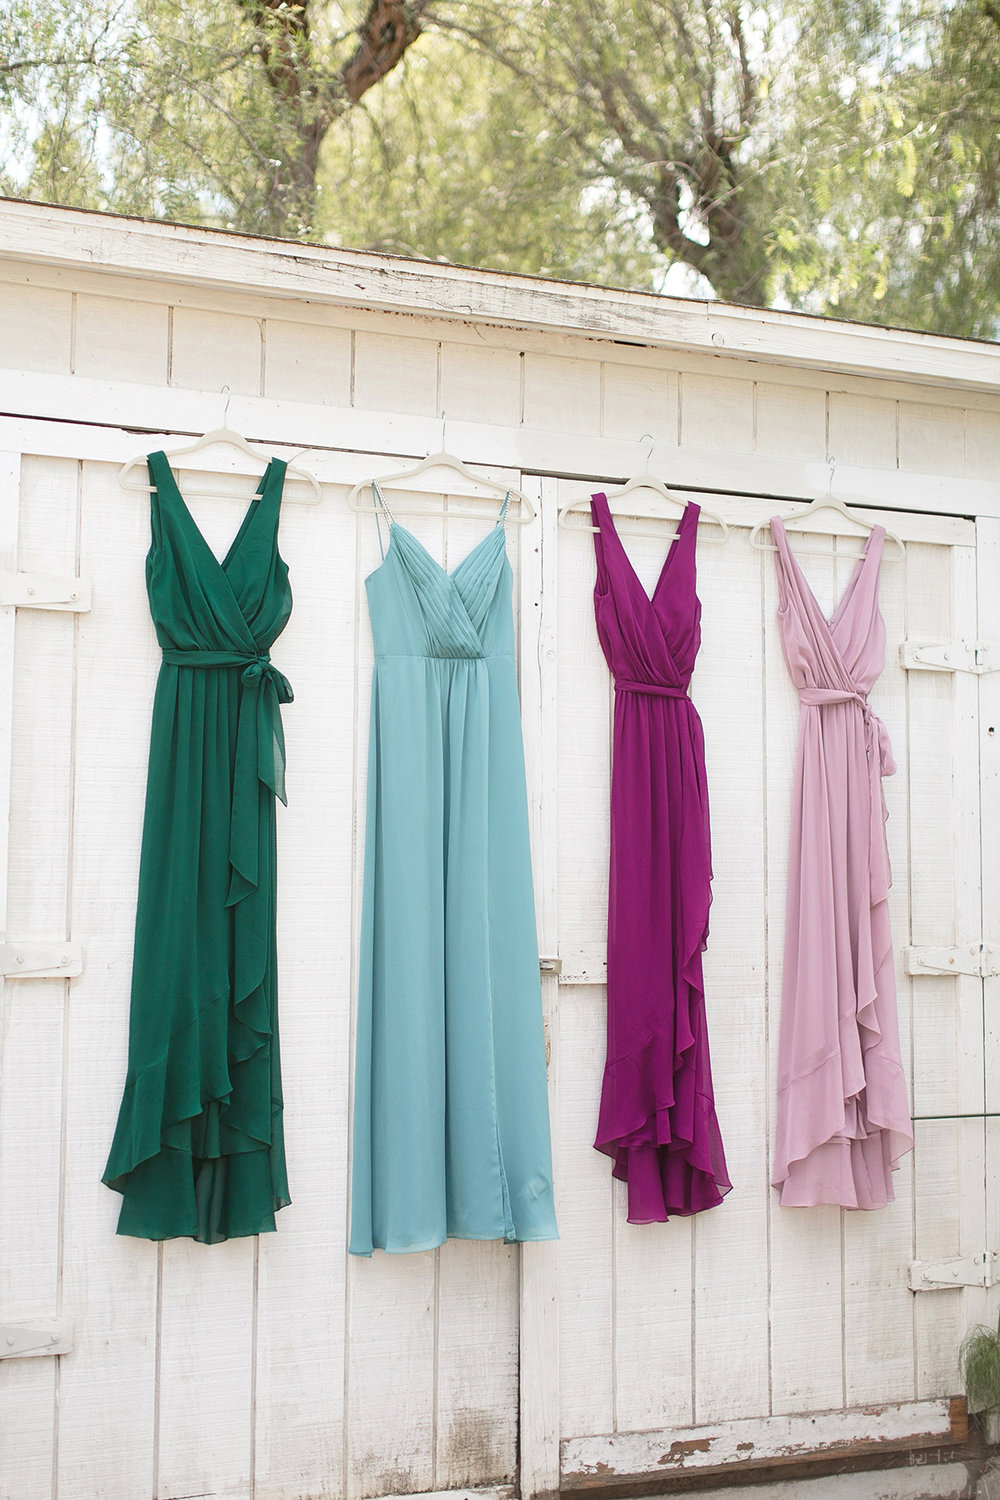 Jewel Tone Bridesmaid Dresses - Celestial Wedding Details - Watercolor Acrylic Wedding Invitations - David's Bridal